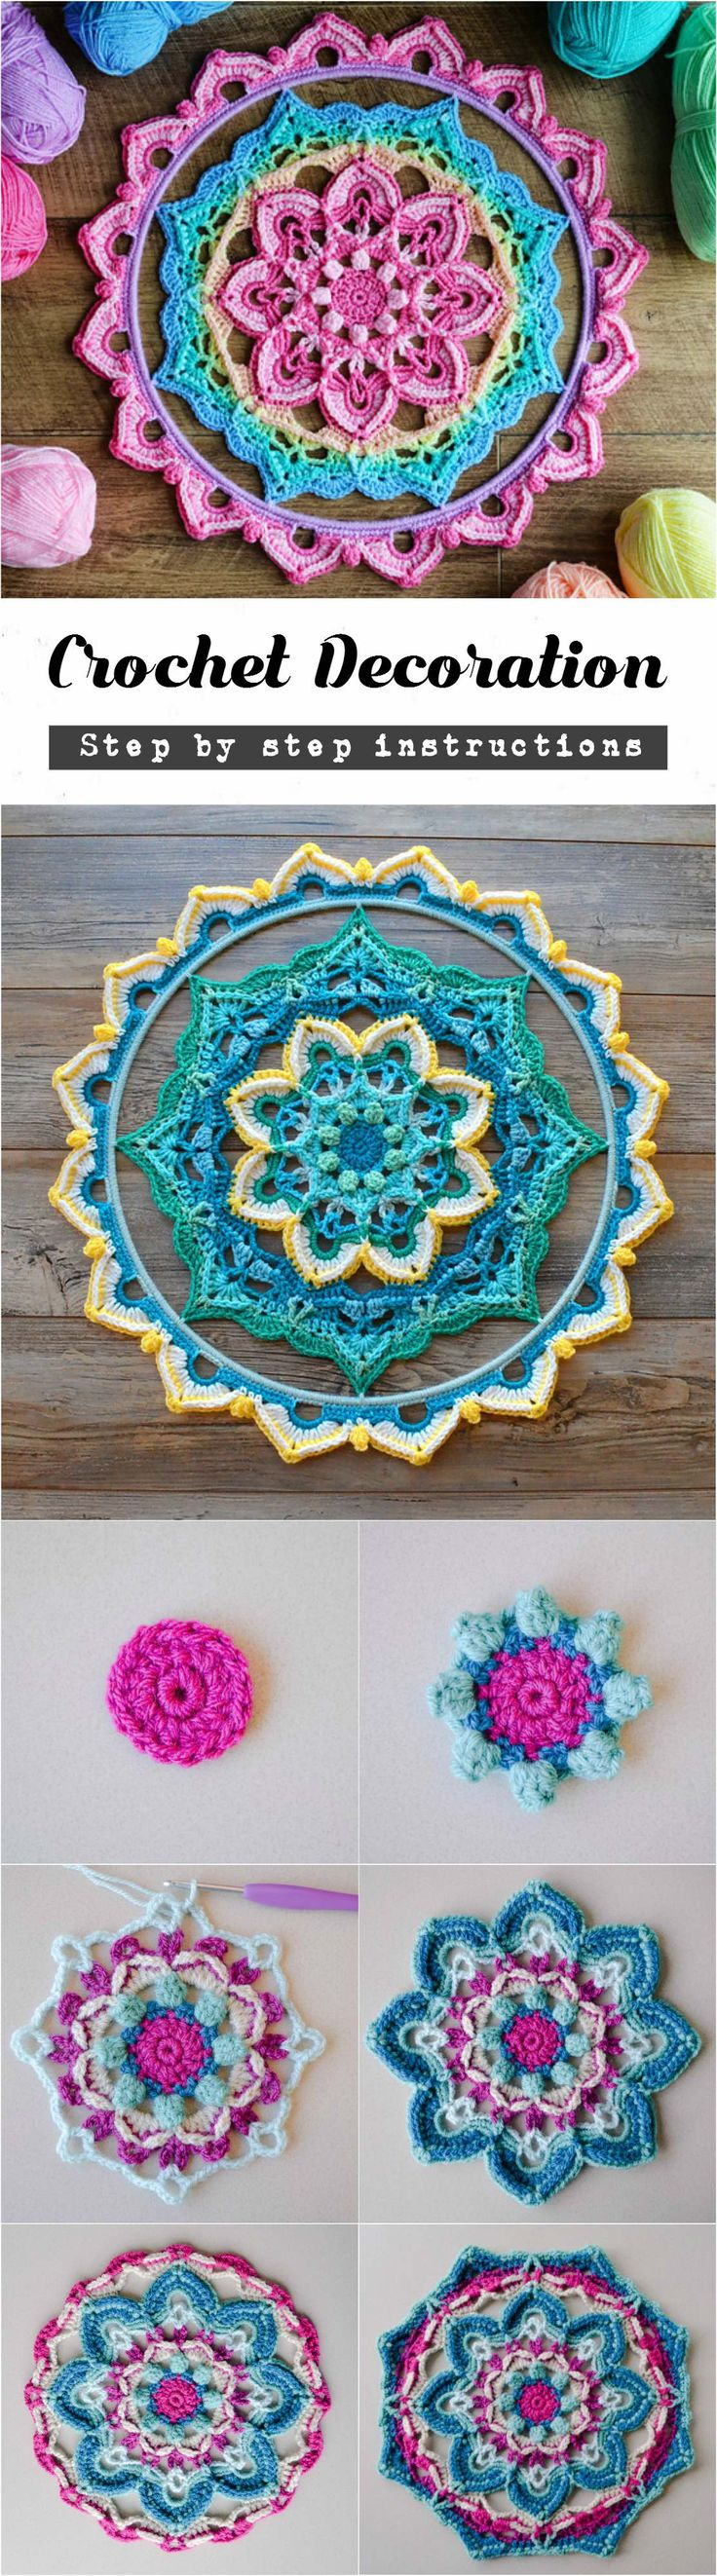 Crochet Wall Decoration